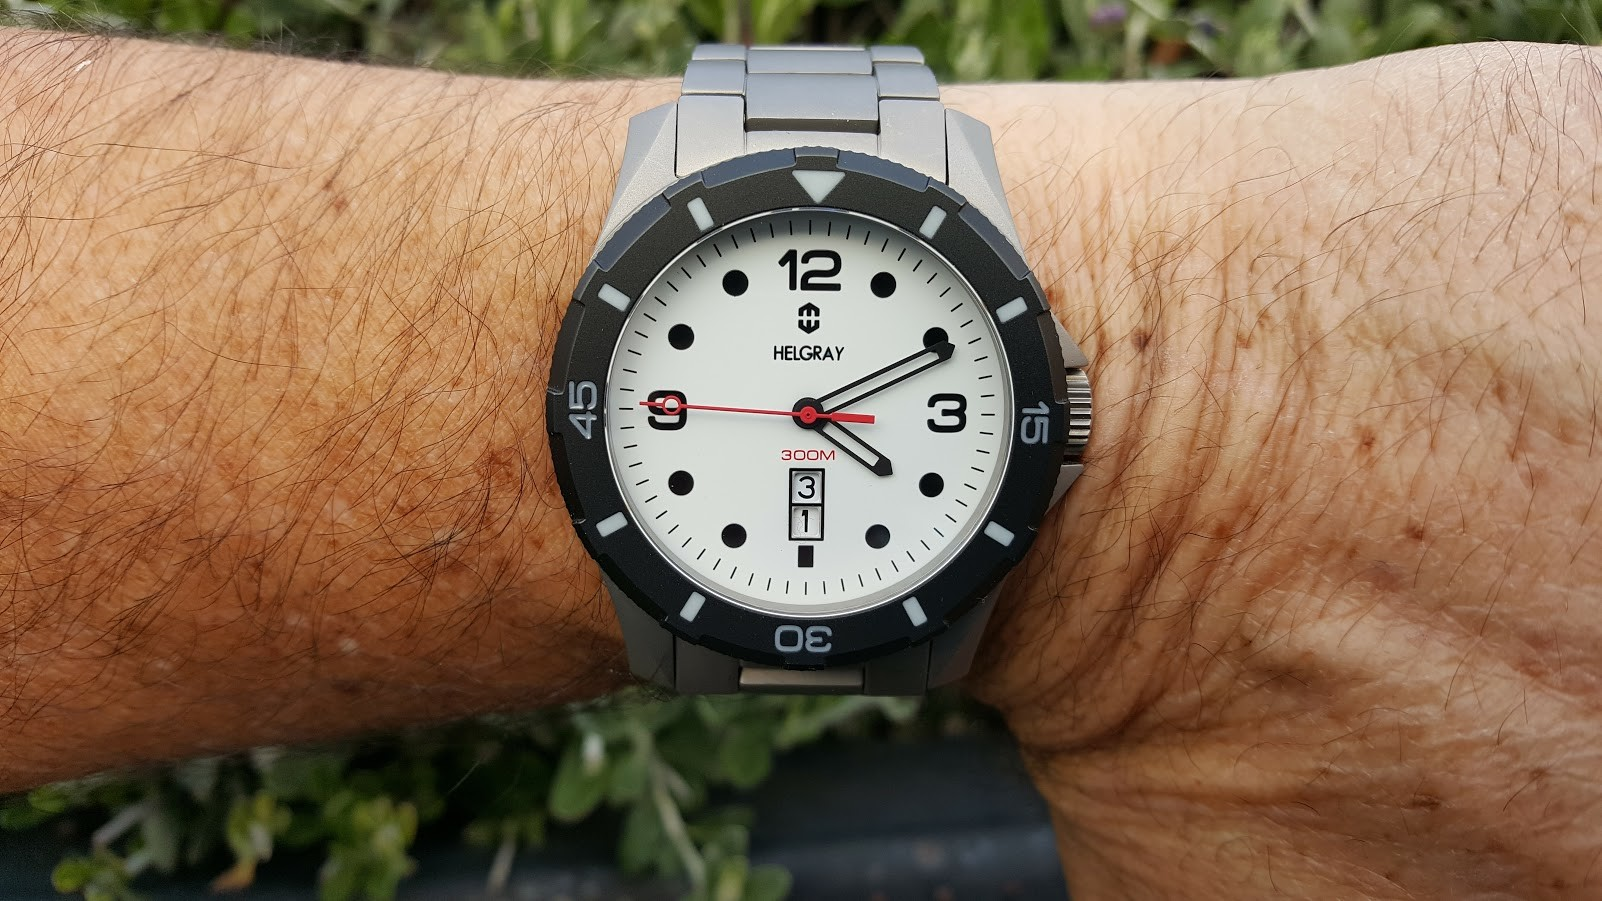 3da79f113 Finding the line between good looks, affordable price and appeal to watch  enthusiasts is a difficult venture. Nadim Elgarhy has taken the lessons  learned in ...